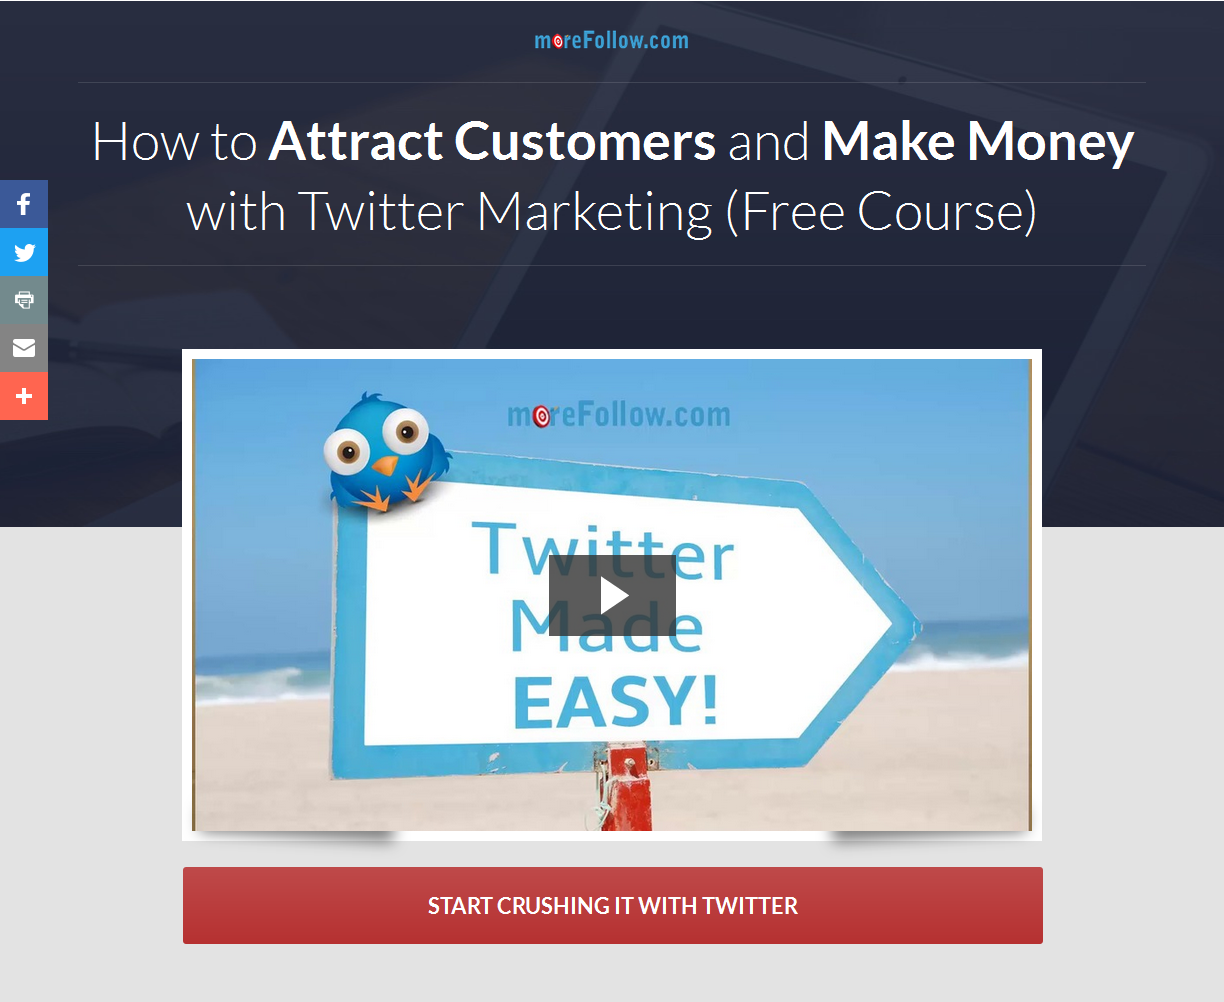 twitter-made-easy-signup-example